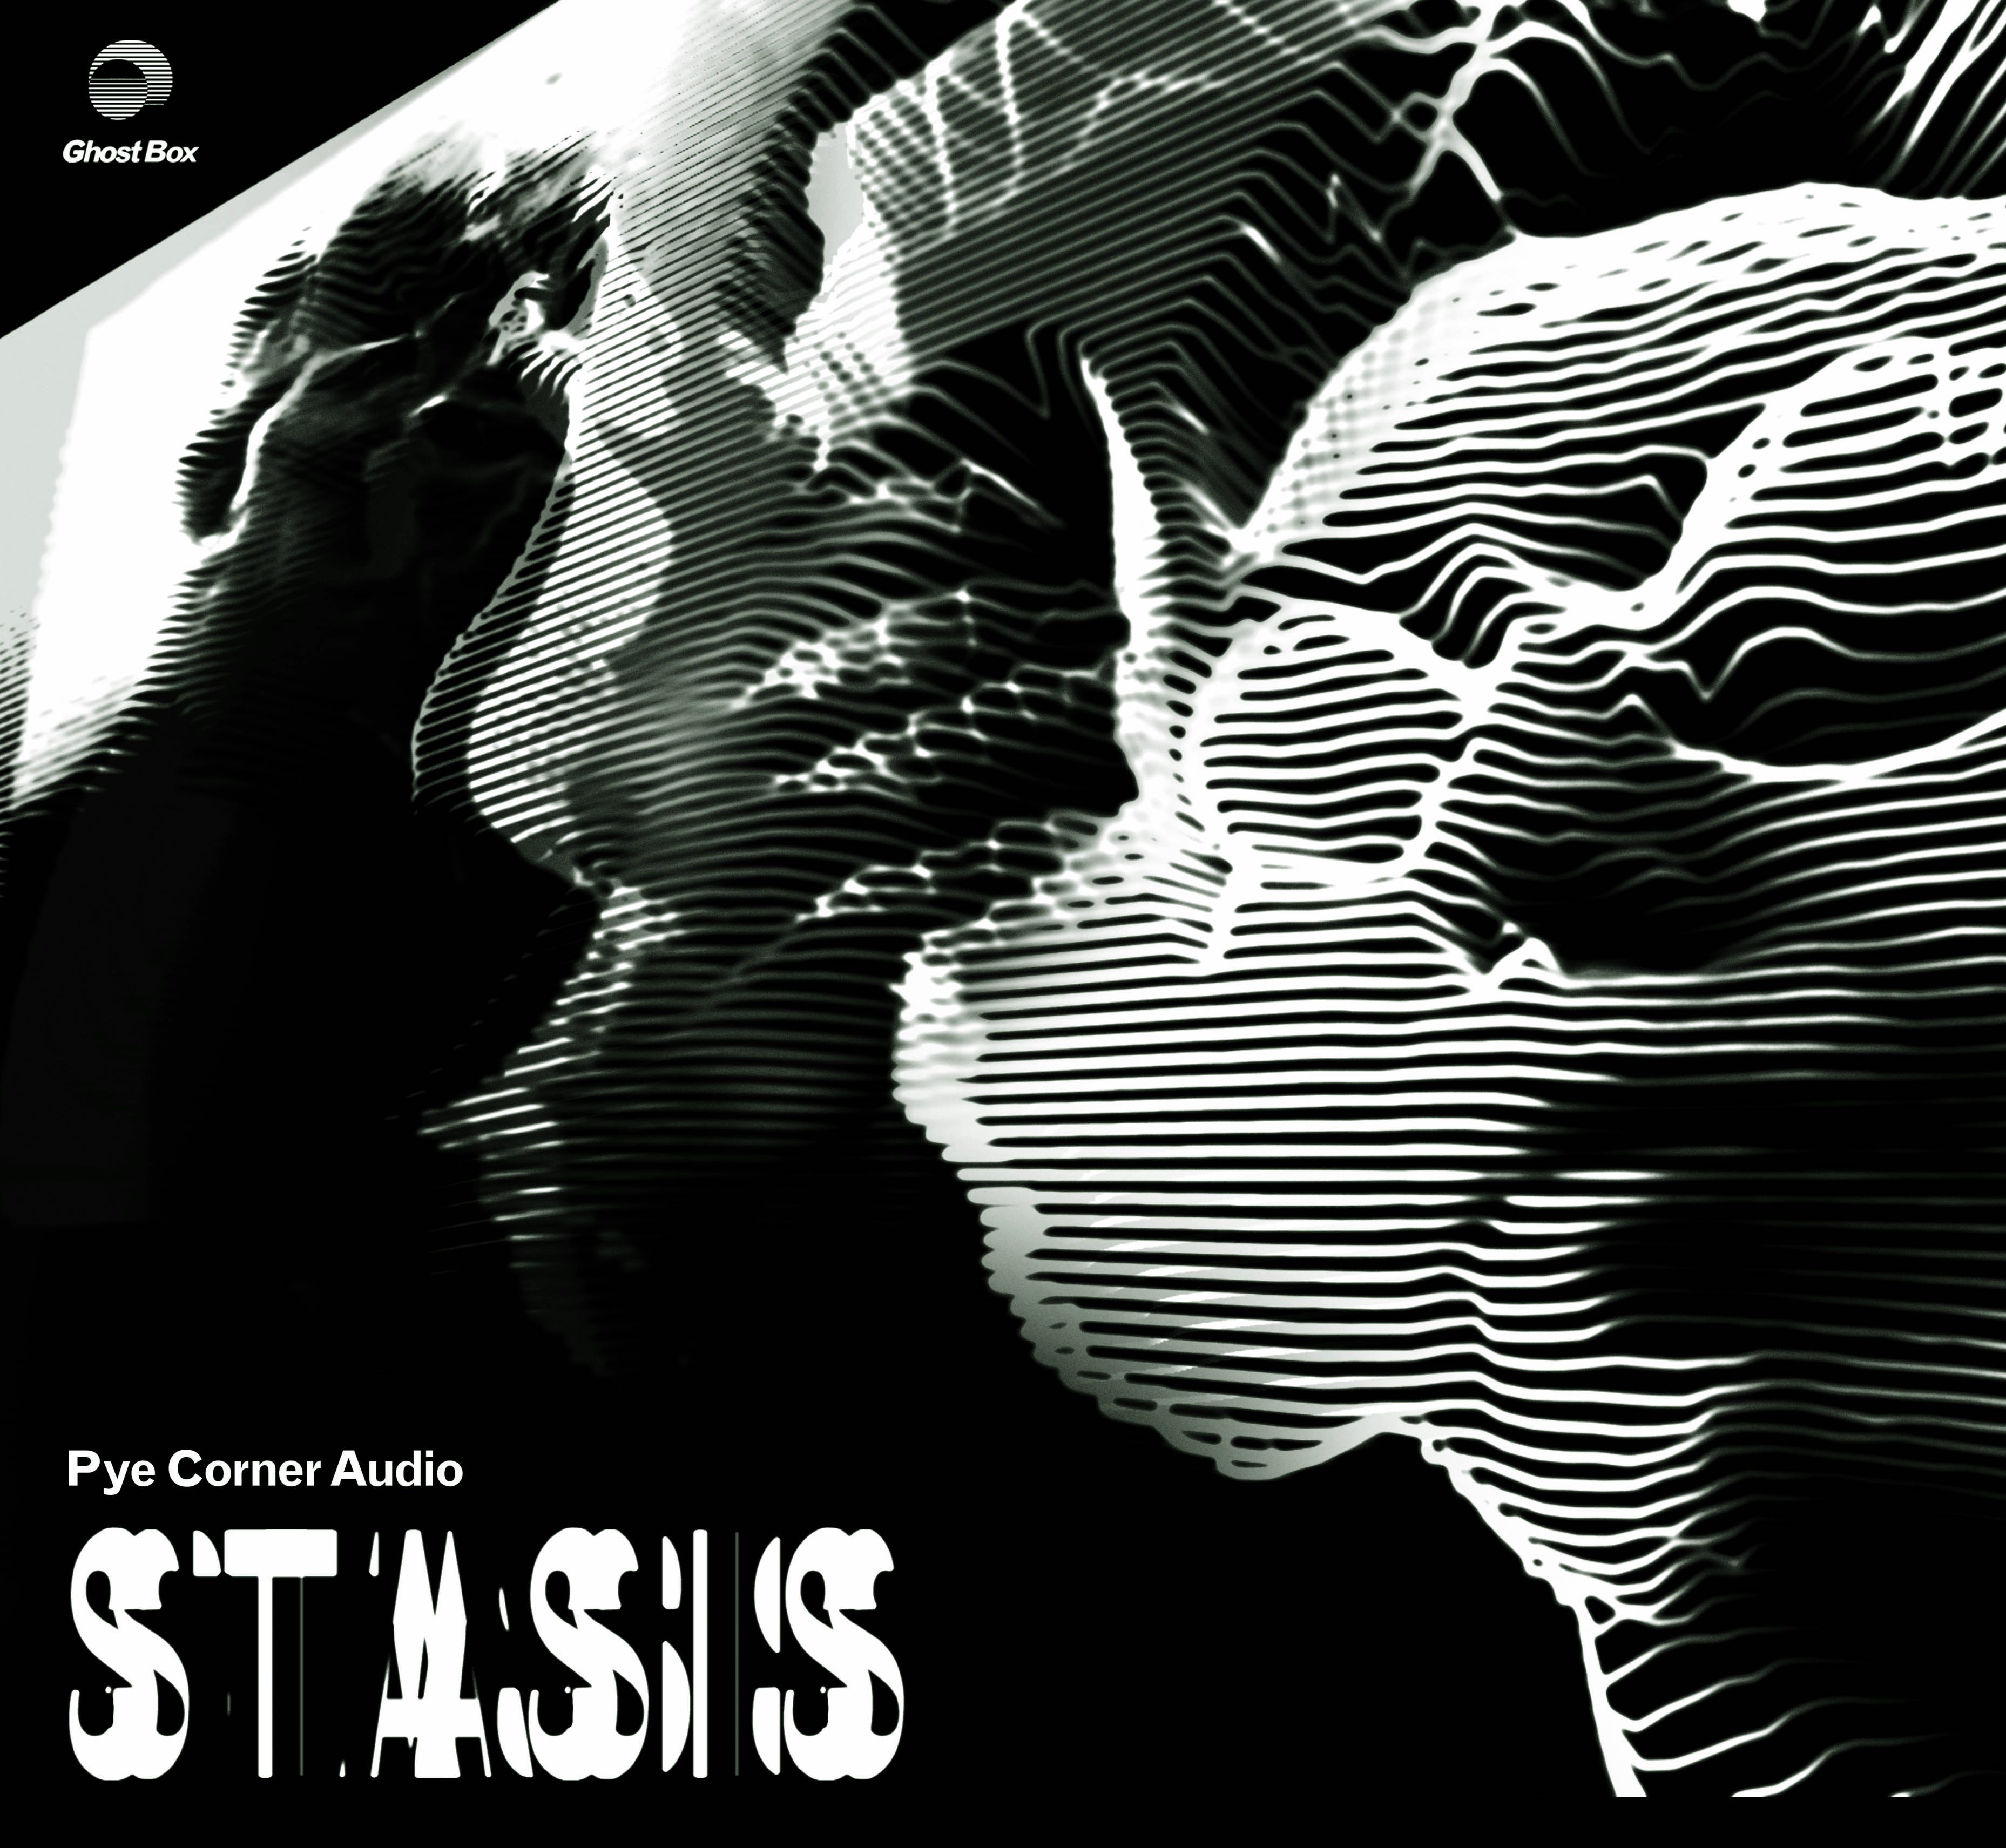 stasis-inner-image-with-text-01